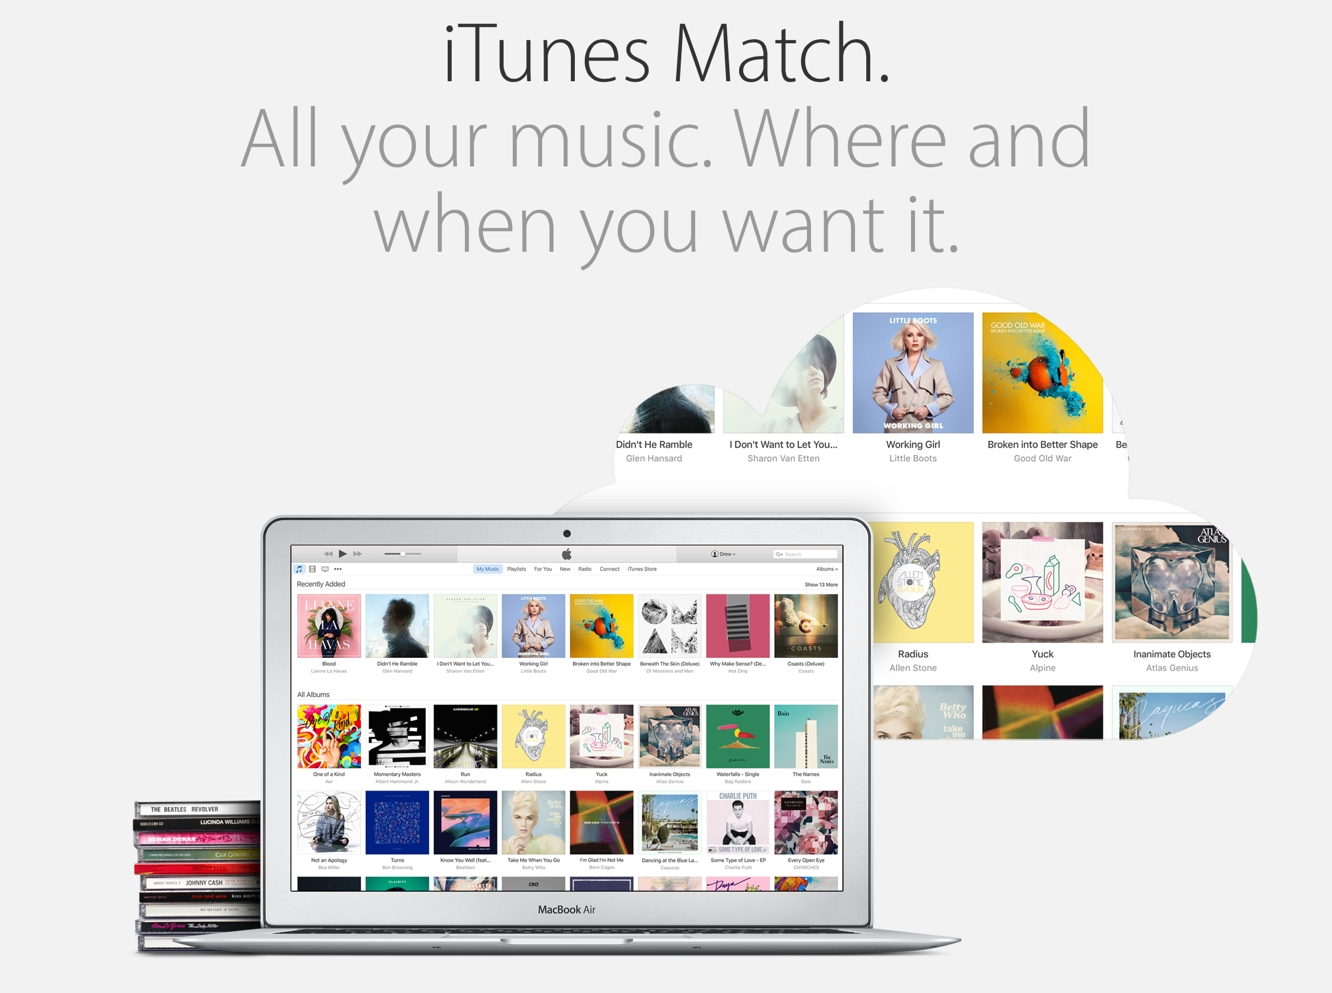 Apple bringing full iTunes Match capabilities to Apple Music subscribers